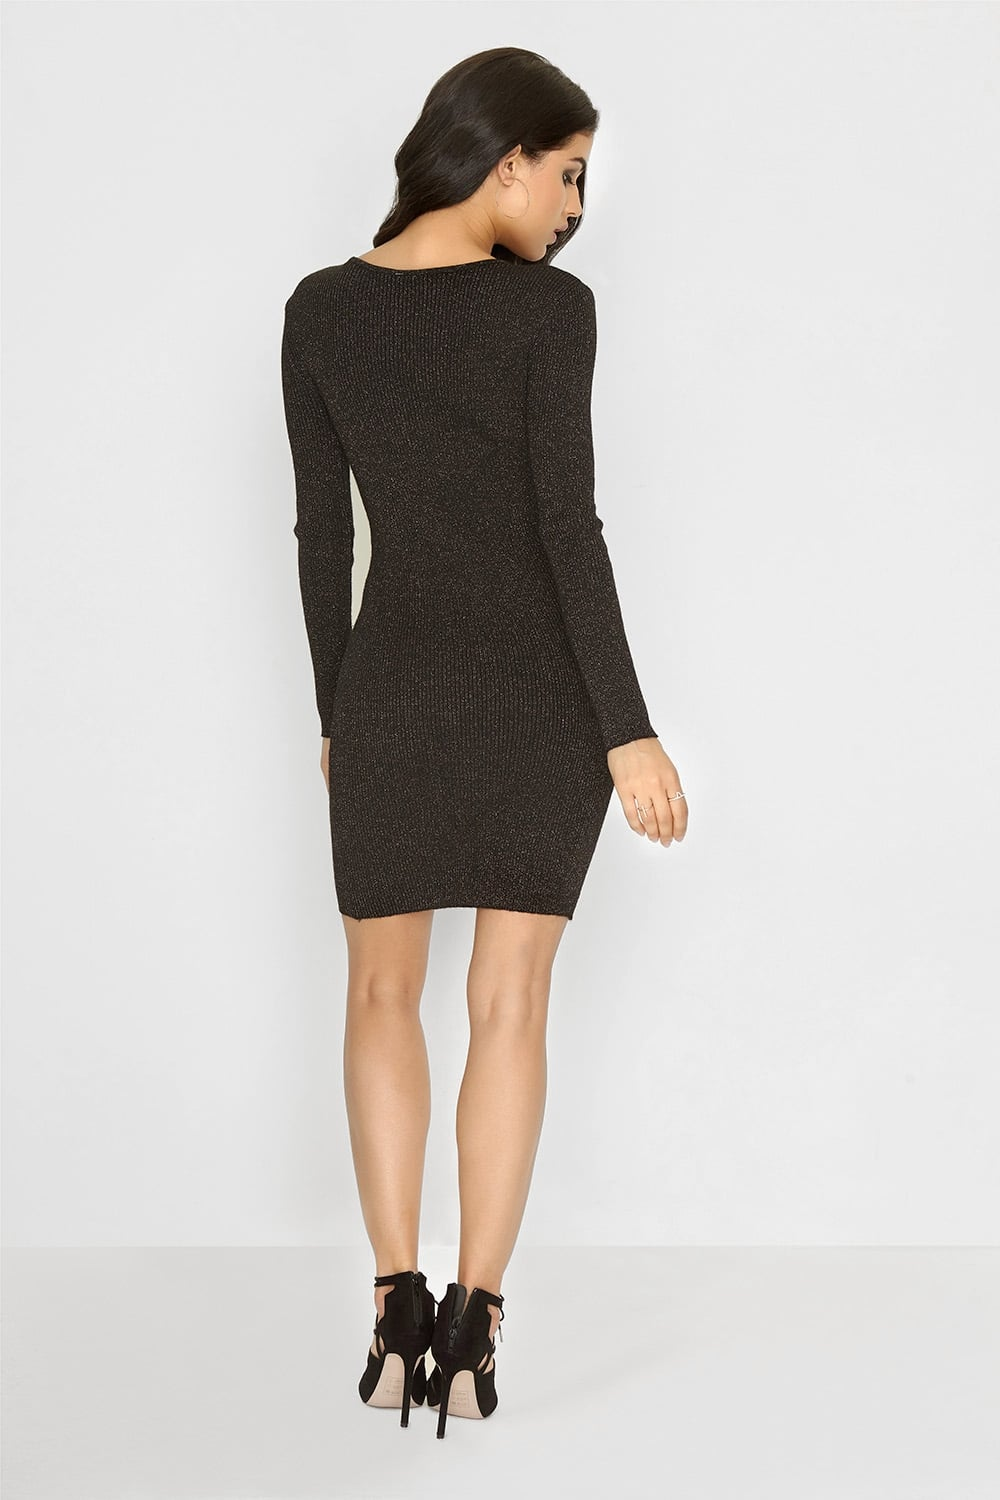 53e6a4ea6493 Outlet Girls On Film Black Knitted Lurex Dress - Outlet Girls On ...